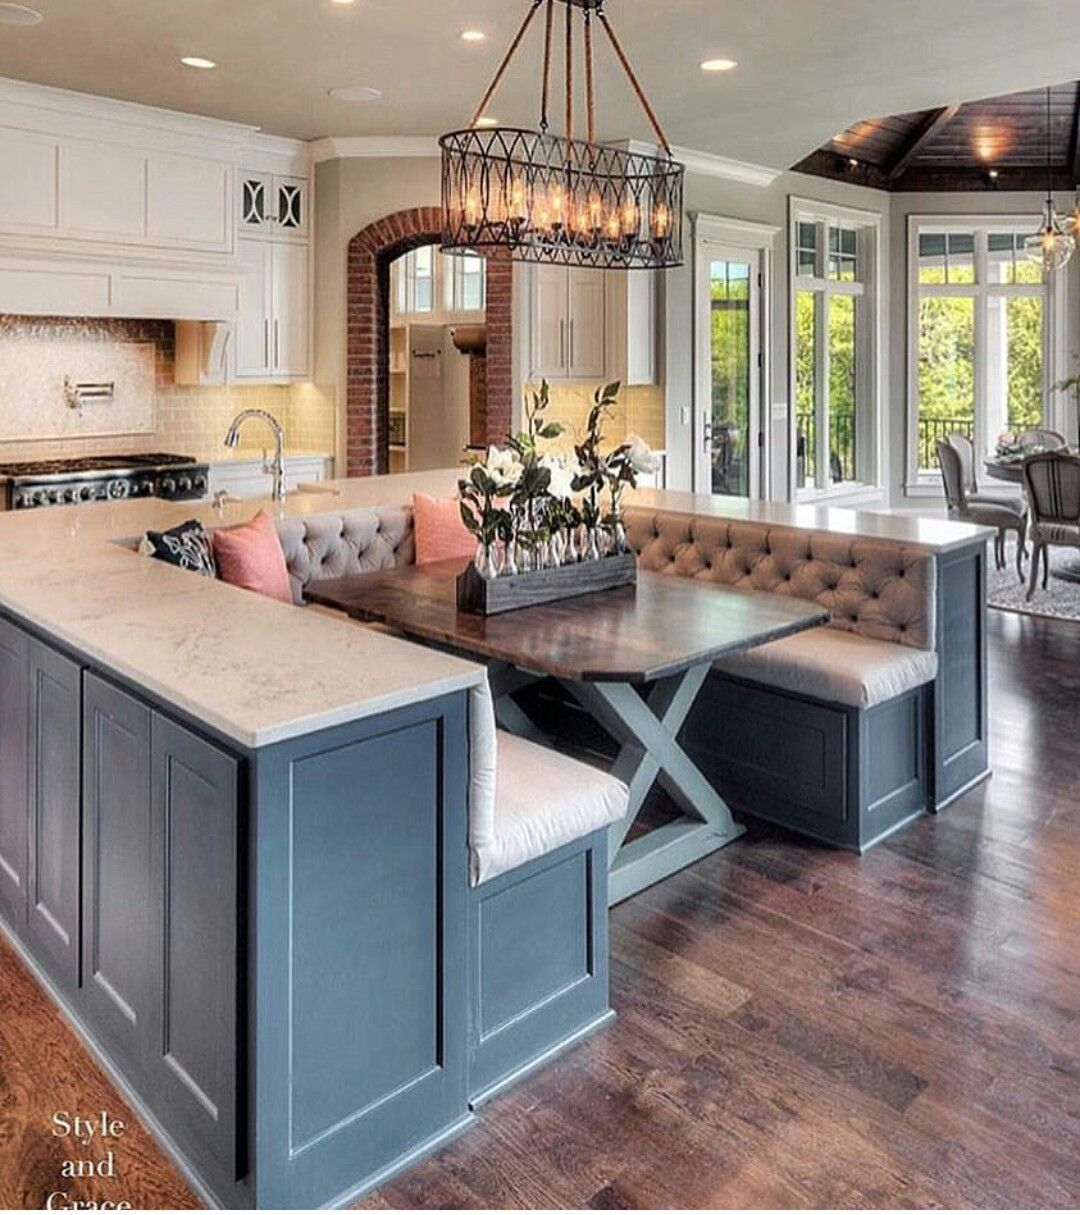 Incredible Bench Built Into Island In 2019 Home Kitchens Kitchen Beatyapartments Chair Design Images Beatyapartmentscom